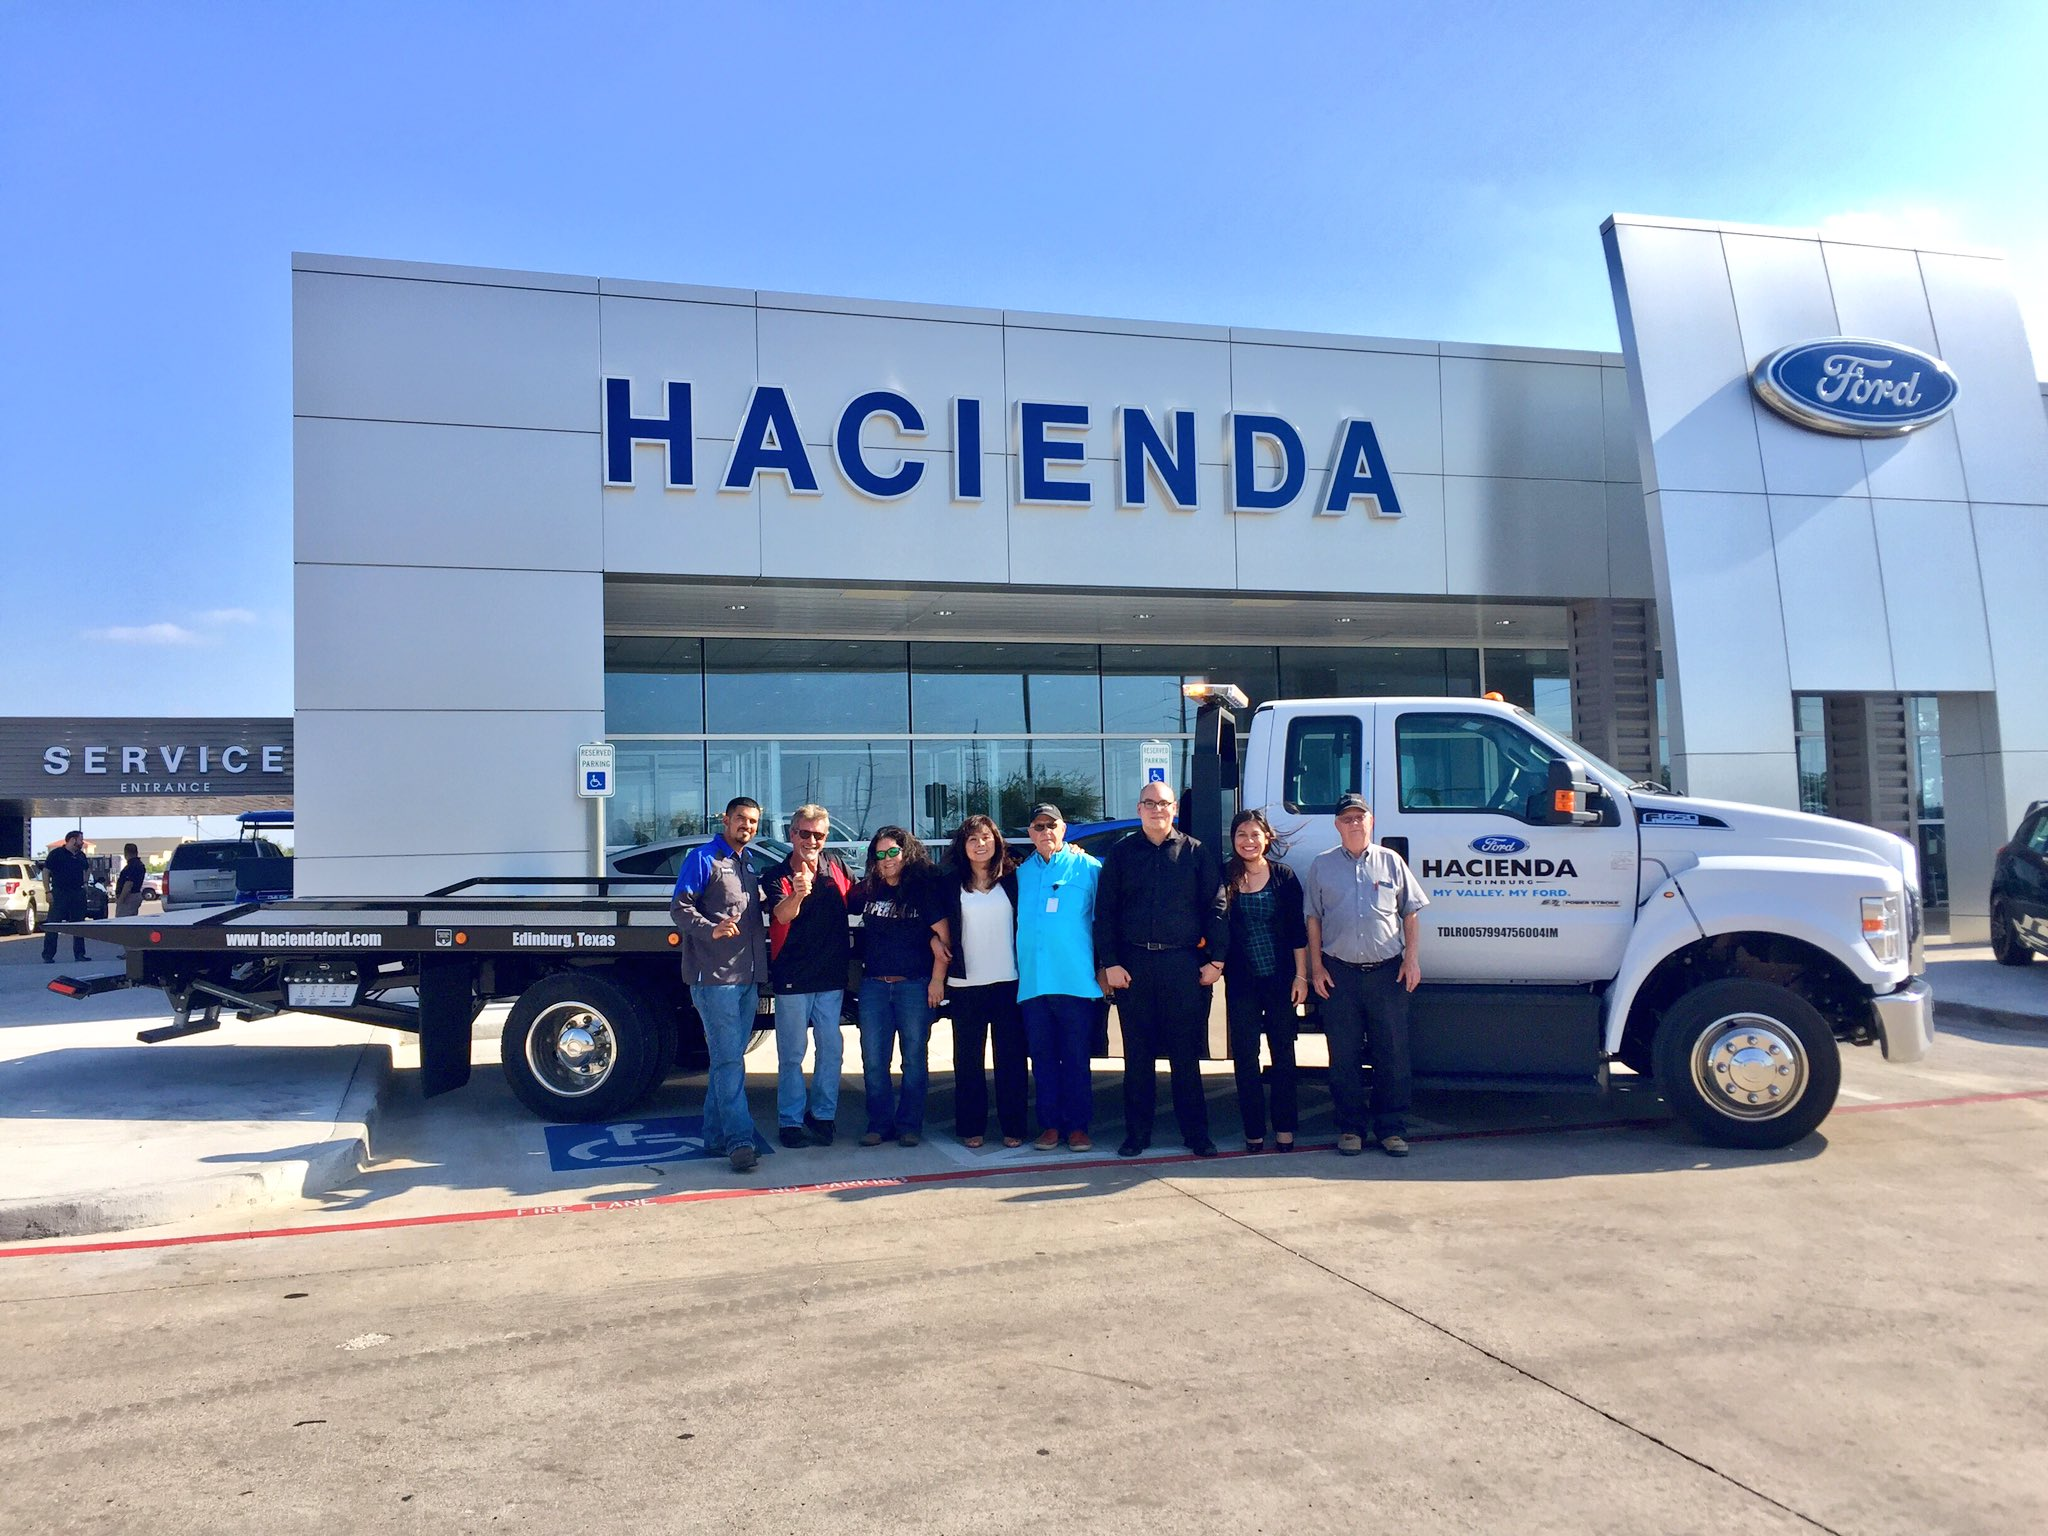 Hacienda Ford On Twitter We Got Some New Wheels Today Our All New